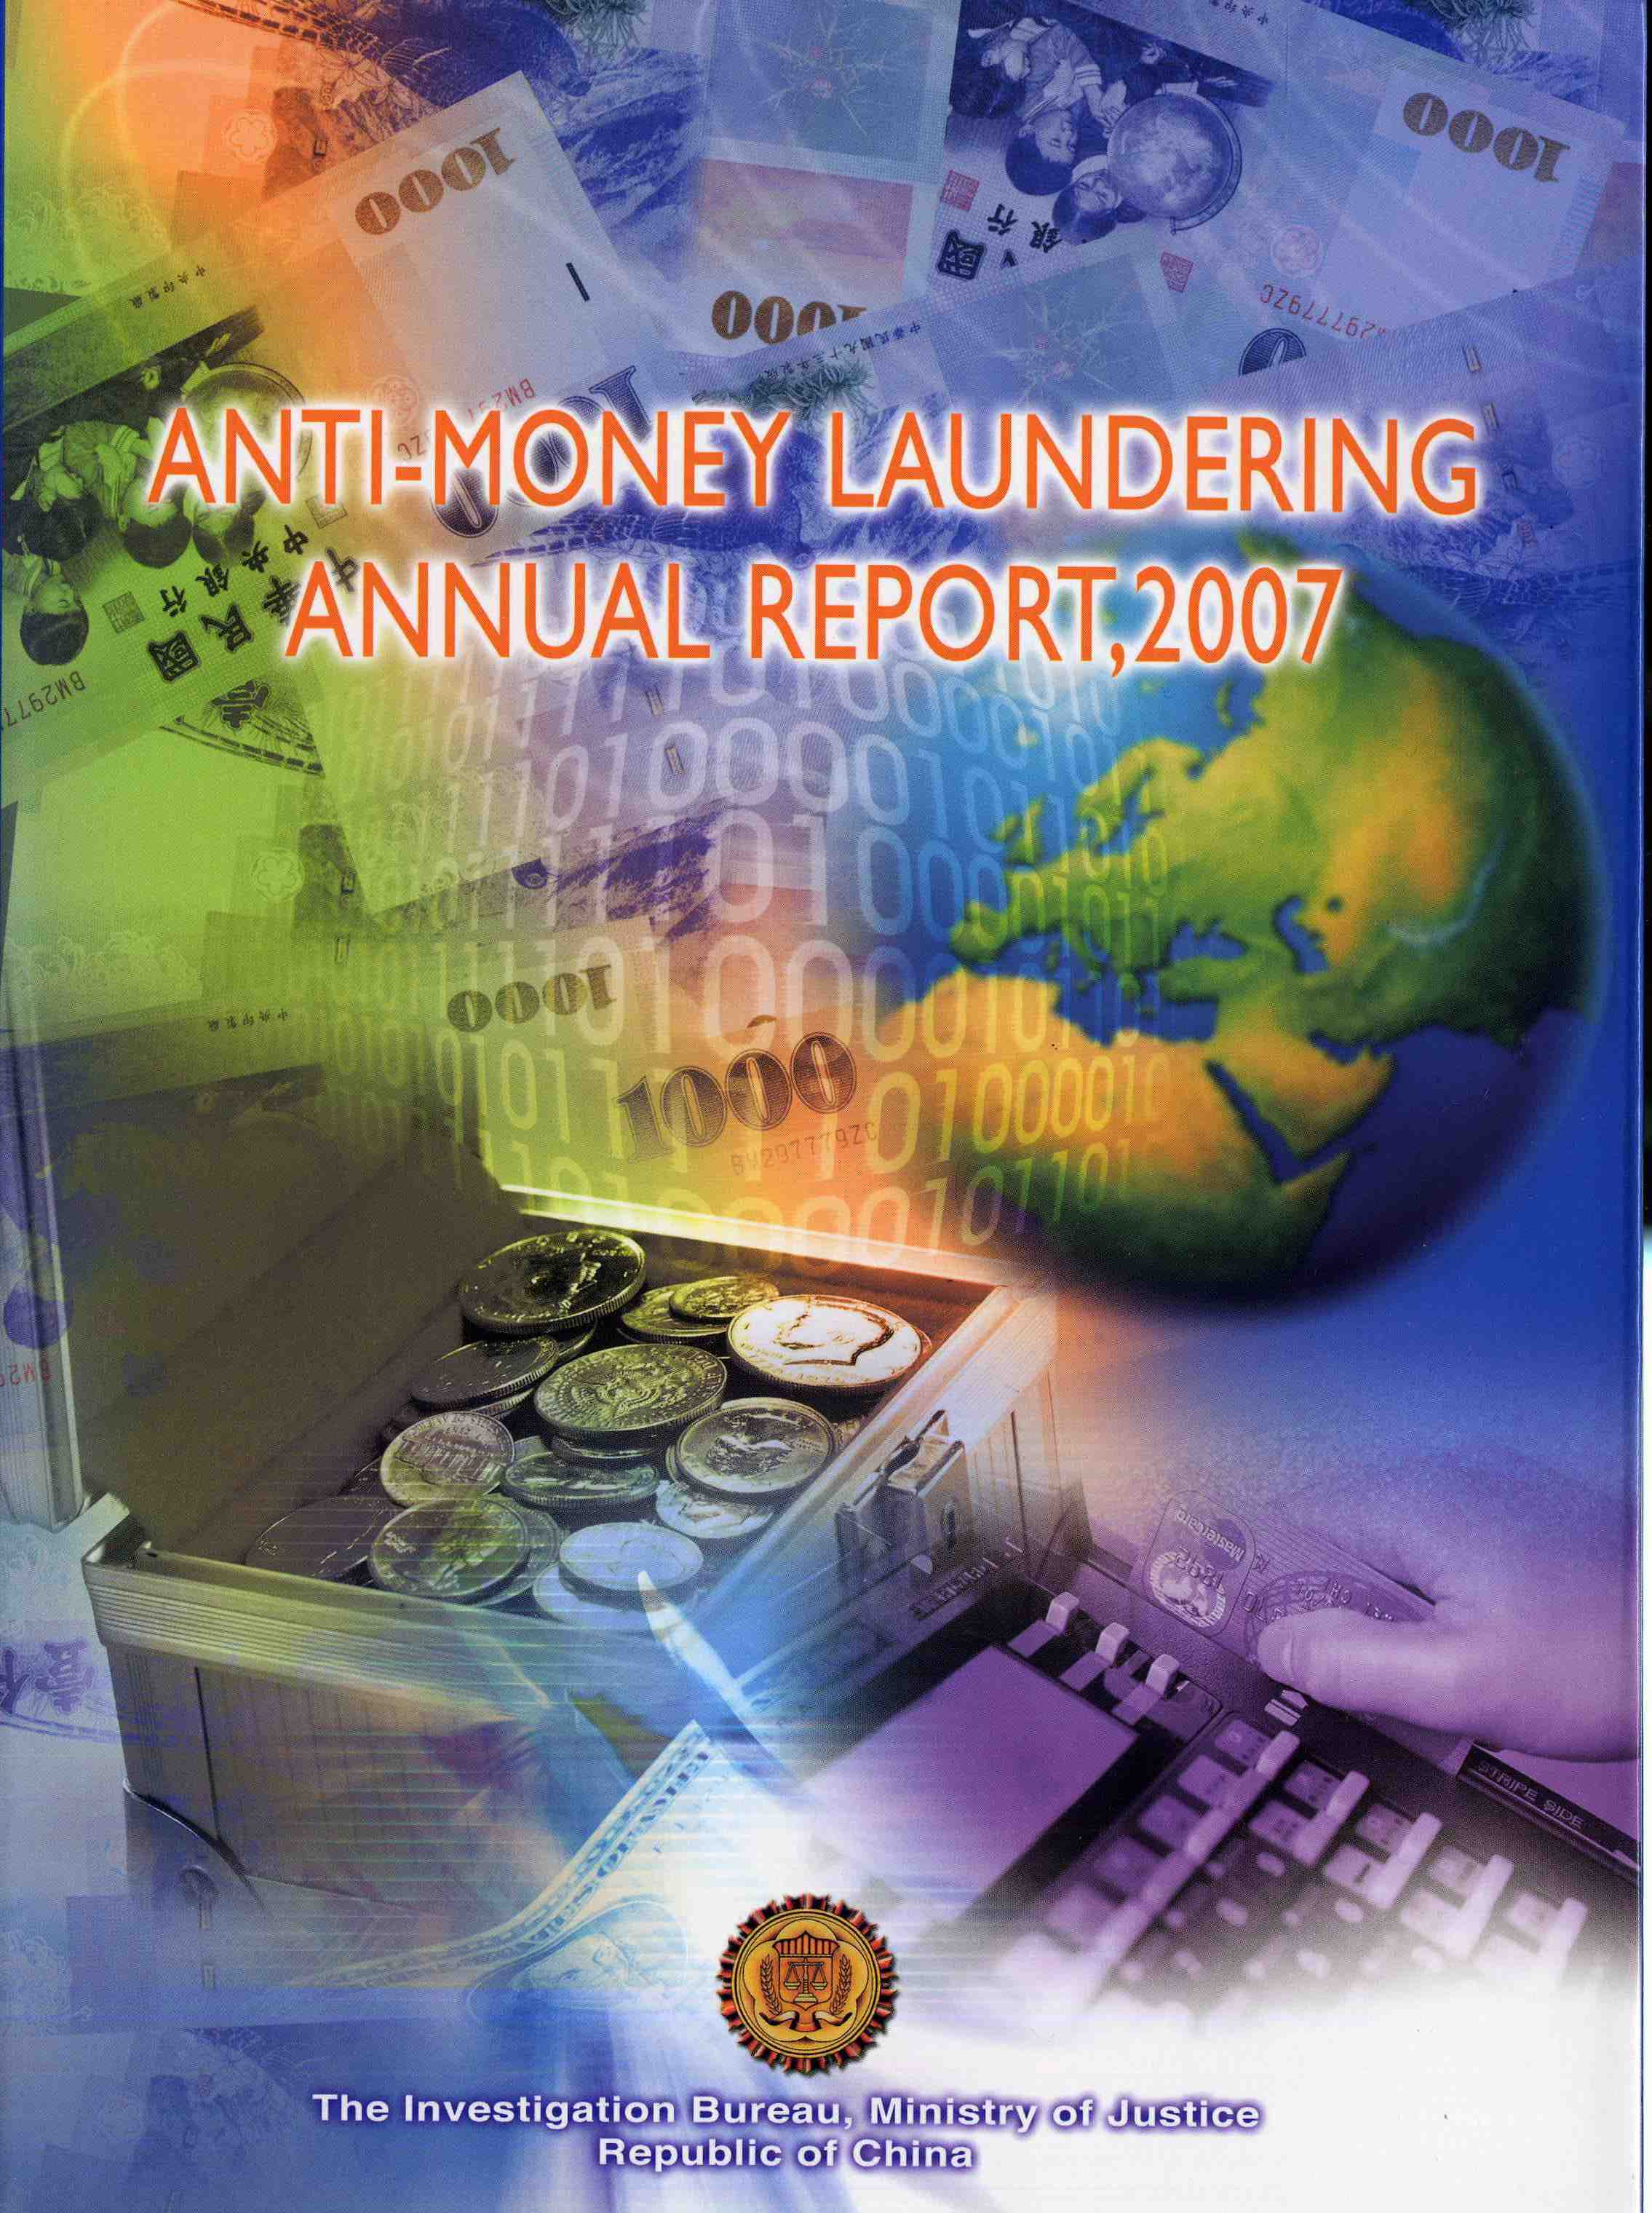 Anti-Money Laundering Annual Report, 2007